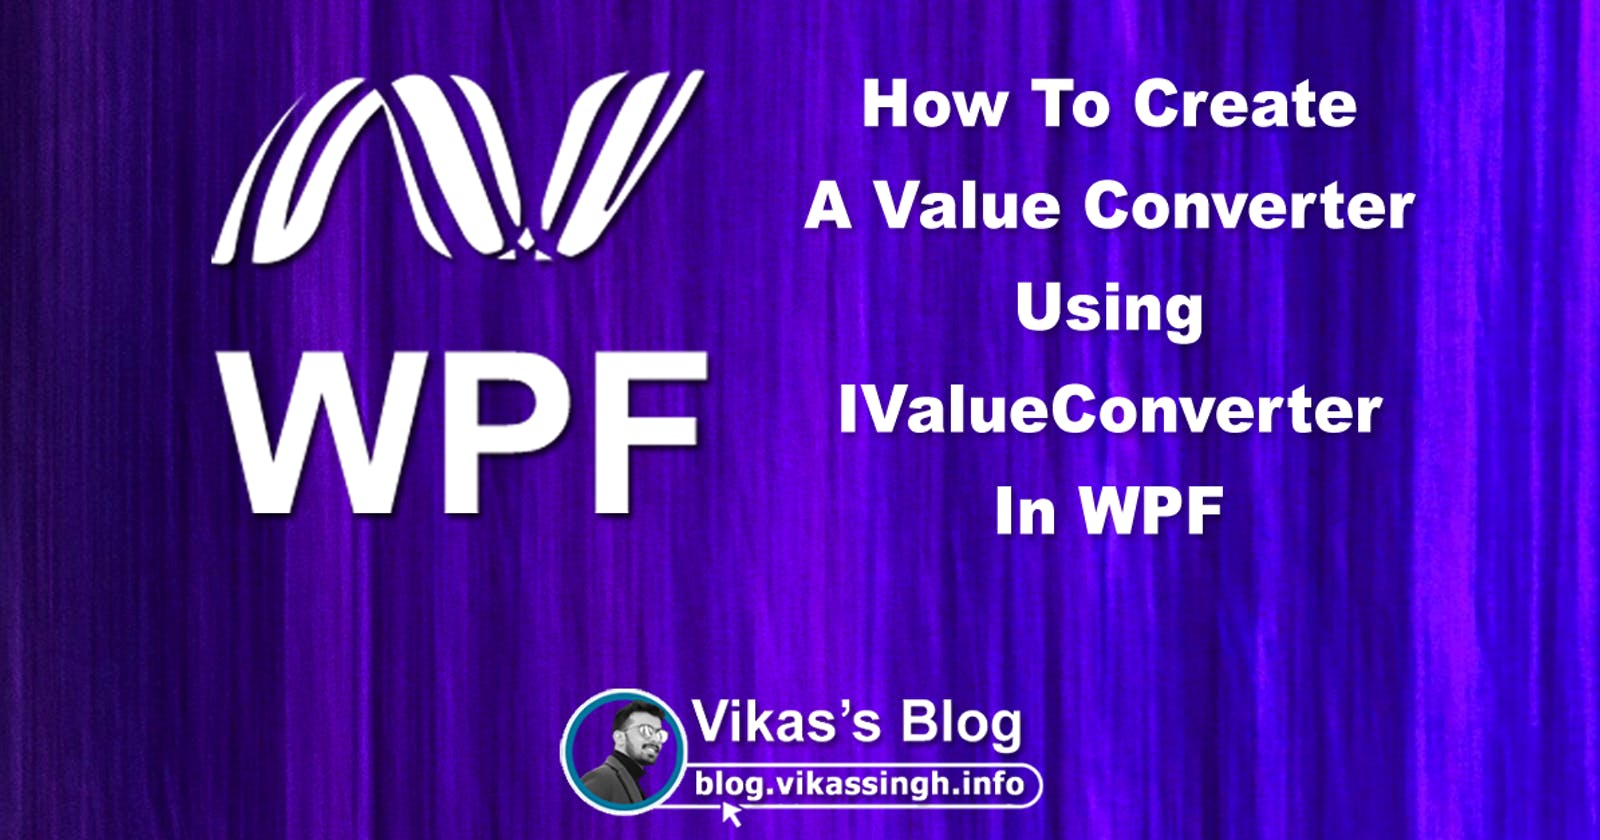 How To Create A Value Converter Using IValueConverter In WPF